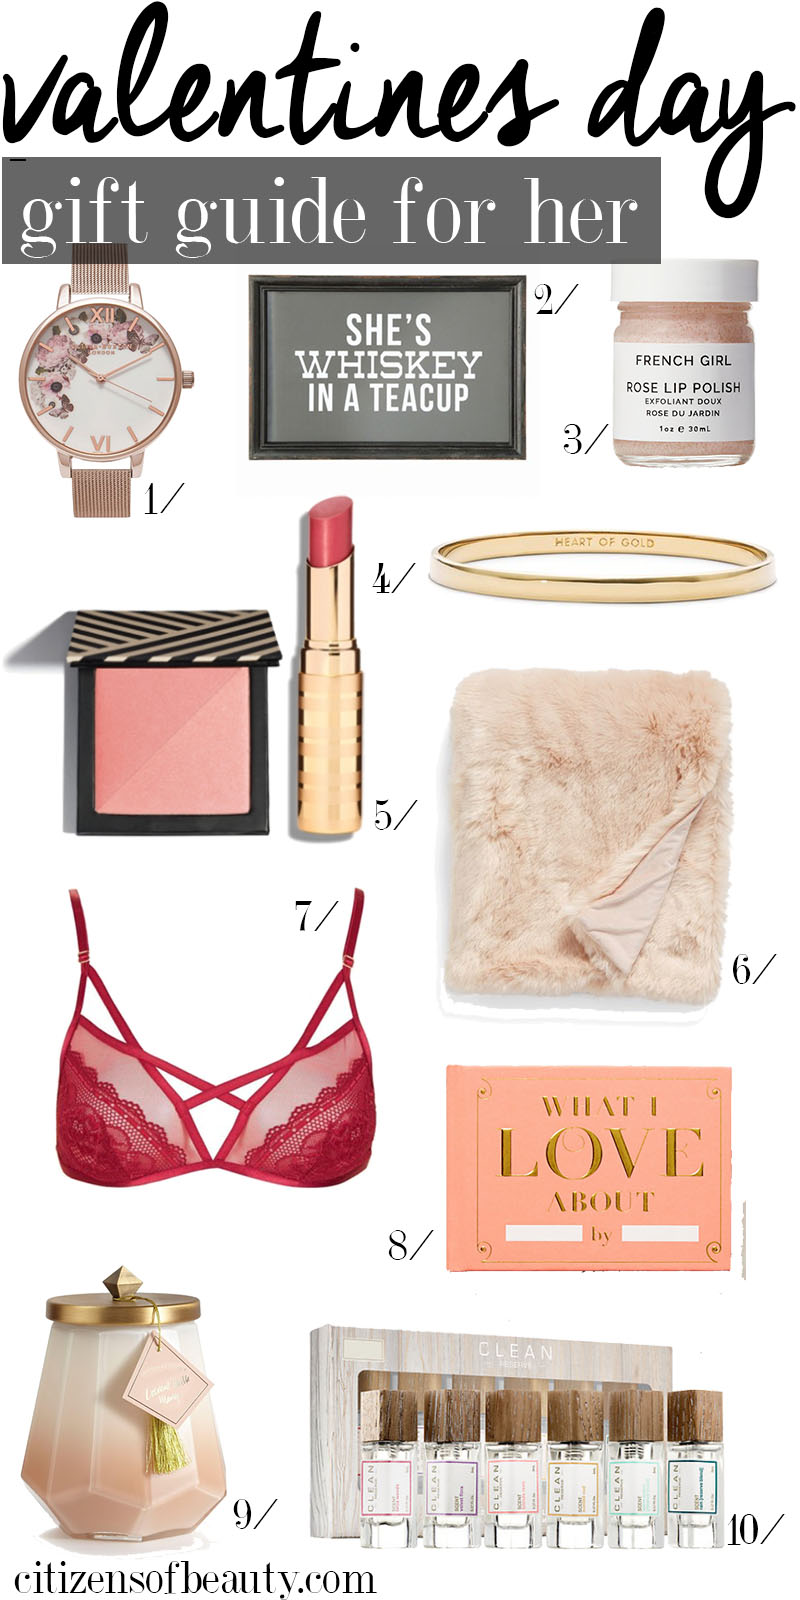 gorgeous valentines day gift guide and ideas for her